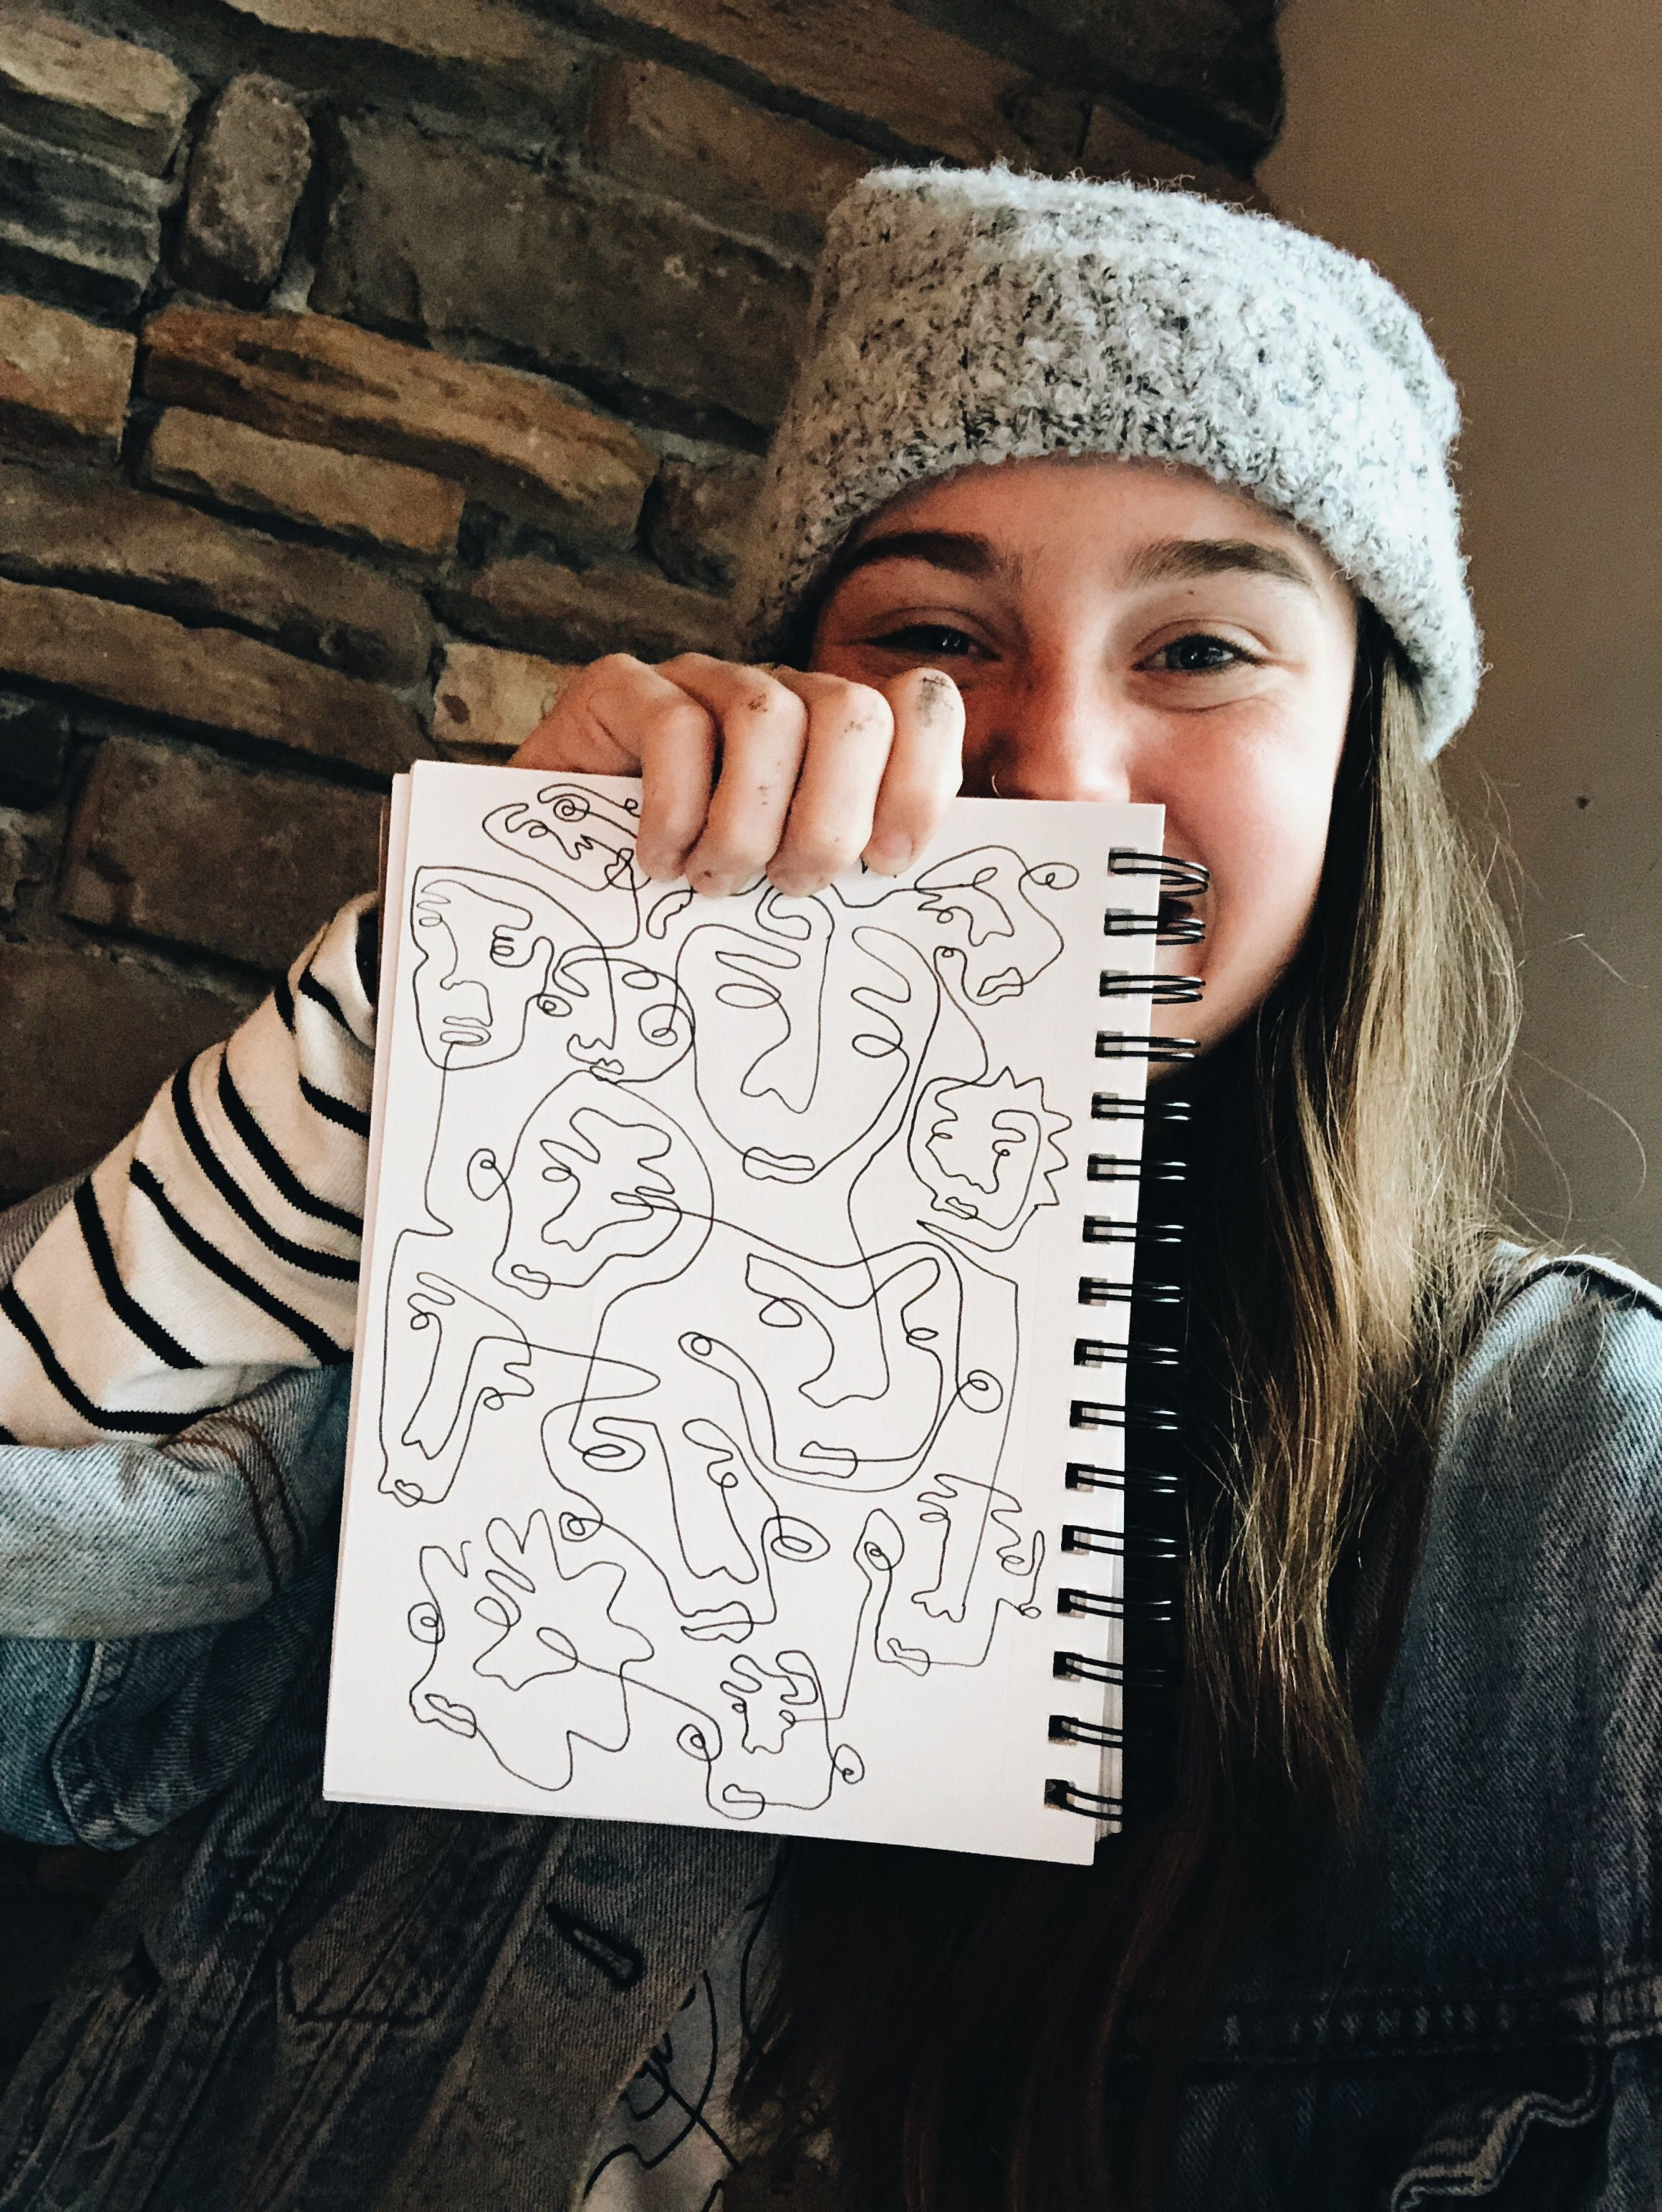 Lyndenhight I Want To Put This On My Door With Tape Lyndenhight In 2020 Art Art Sketchbook Line Art Drawings